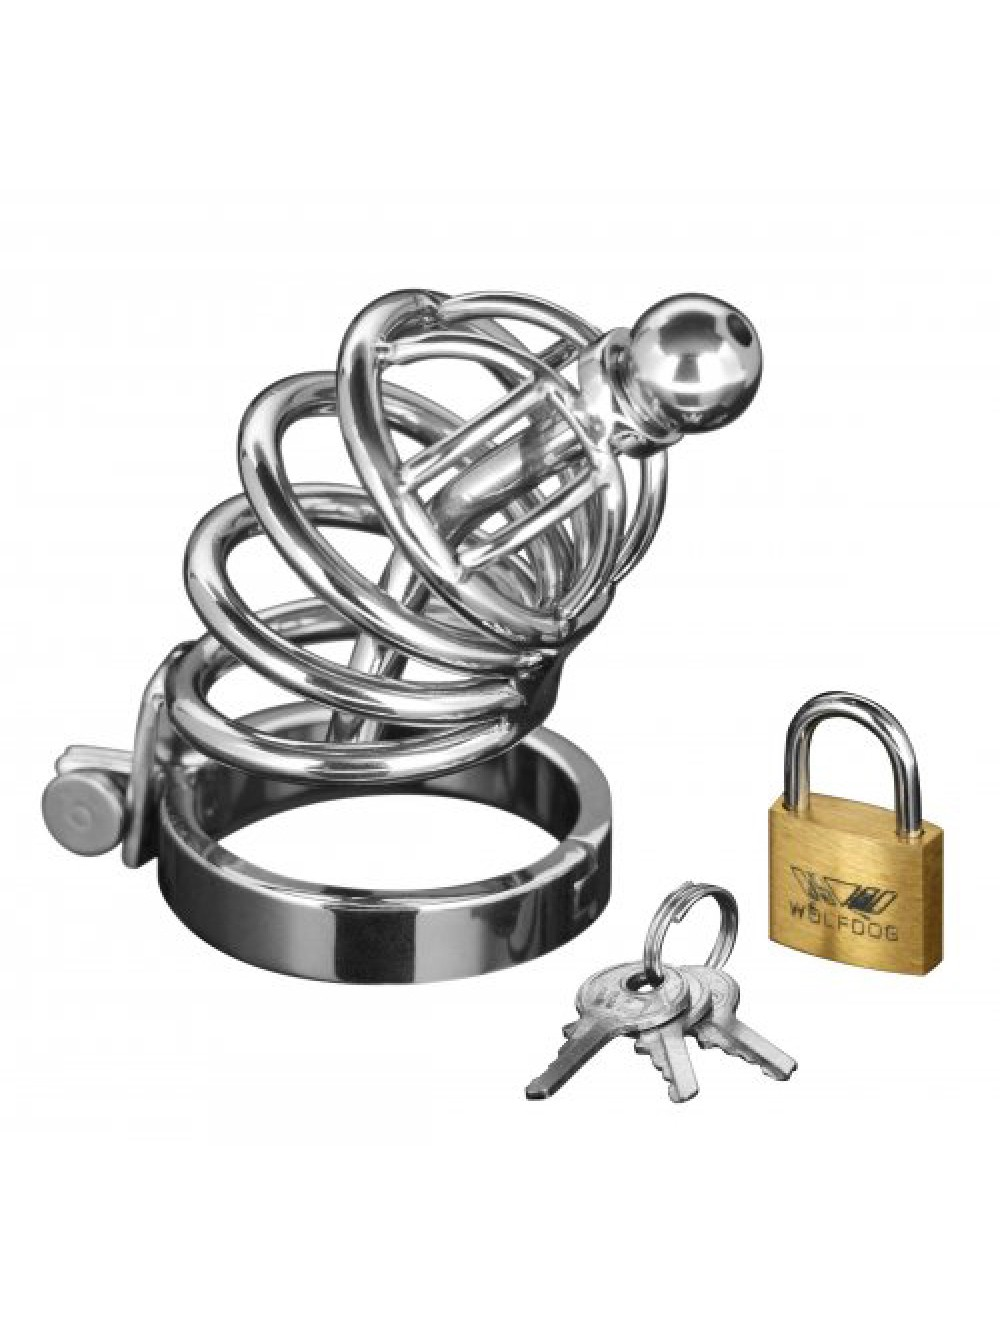 GABBIA DI CASTITA' ASYLUM 4 RING LOCKING CHASTITY CAGE